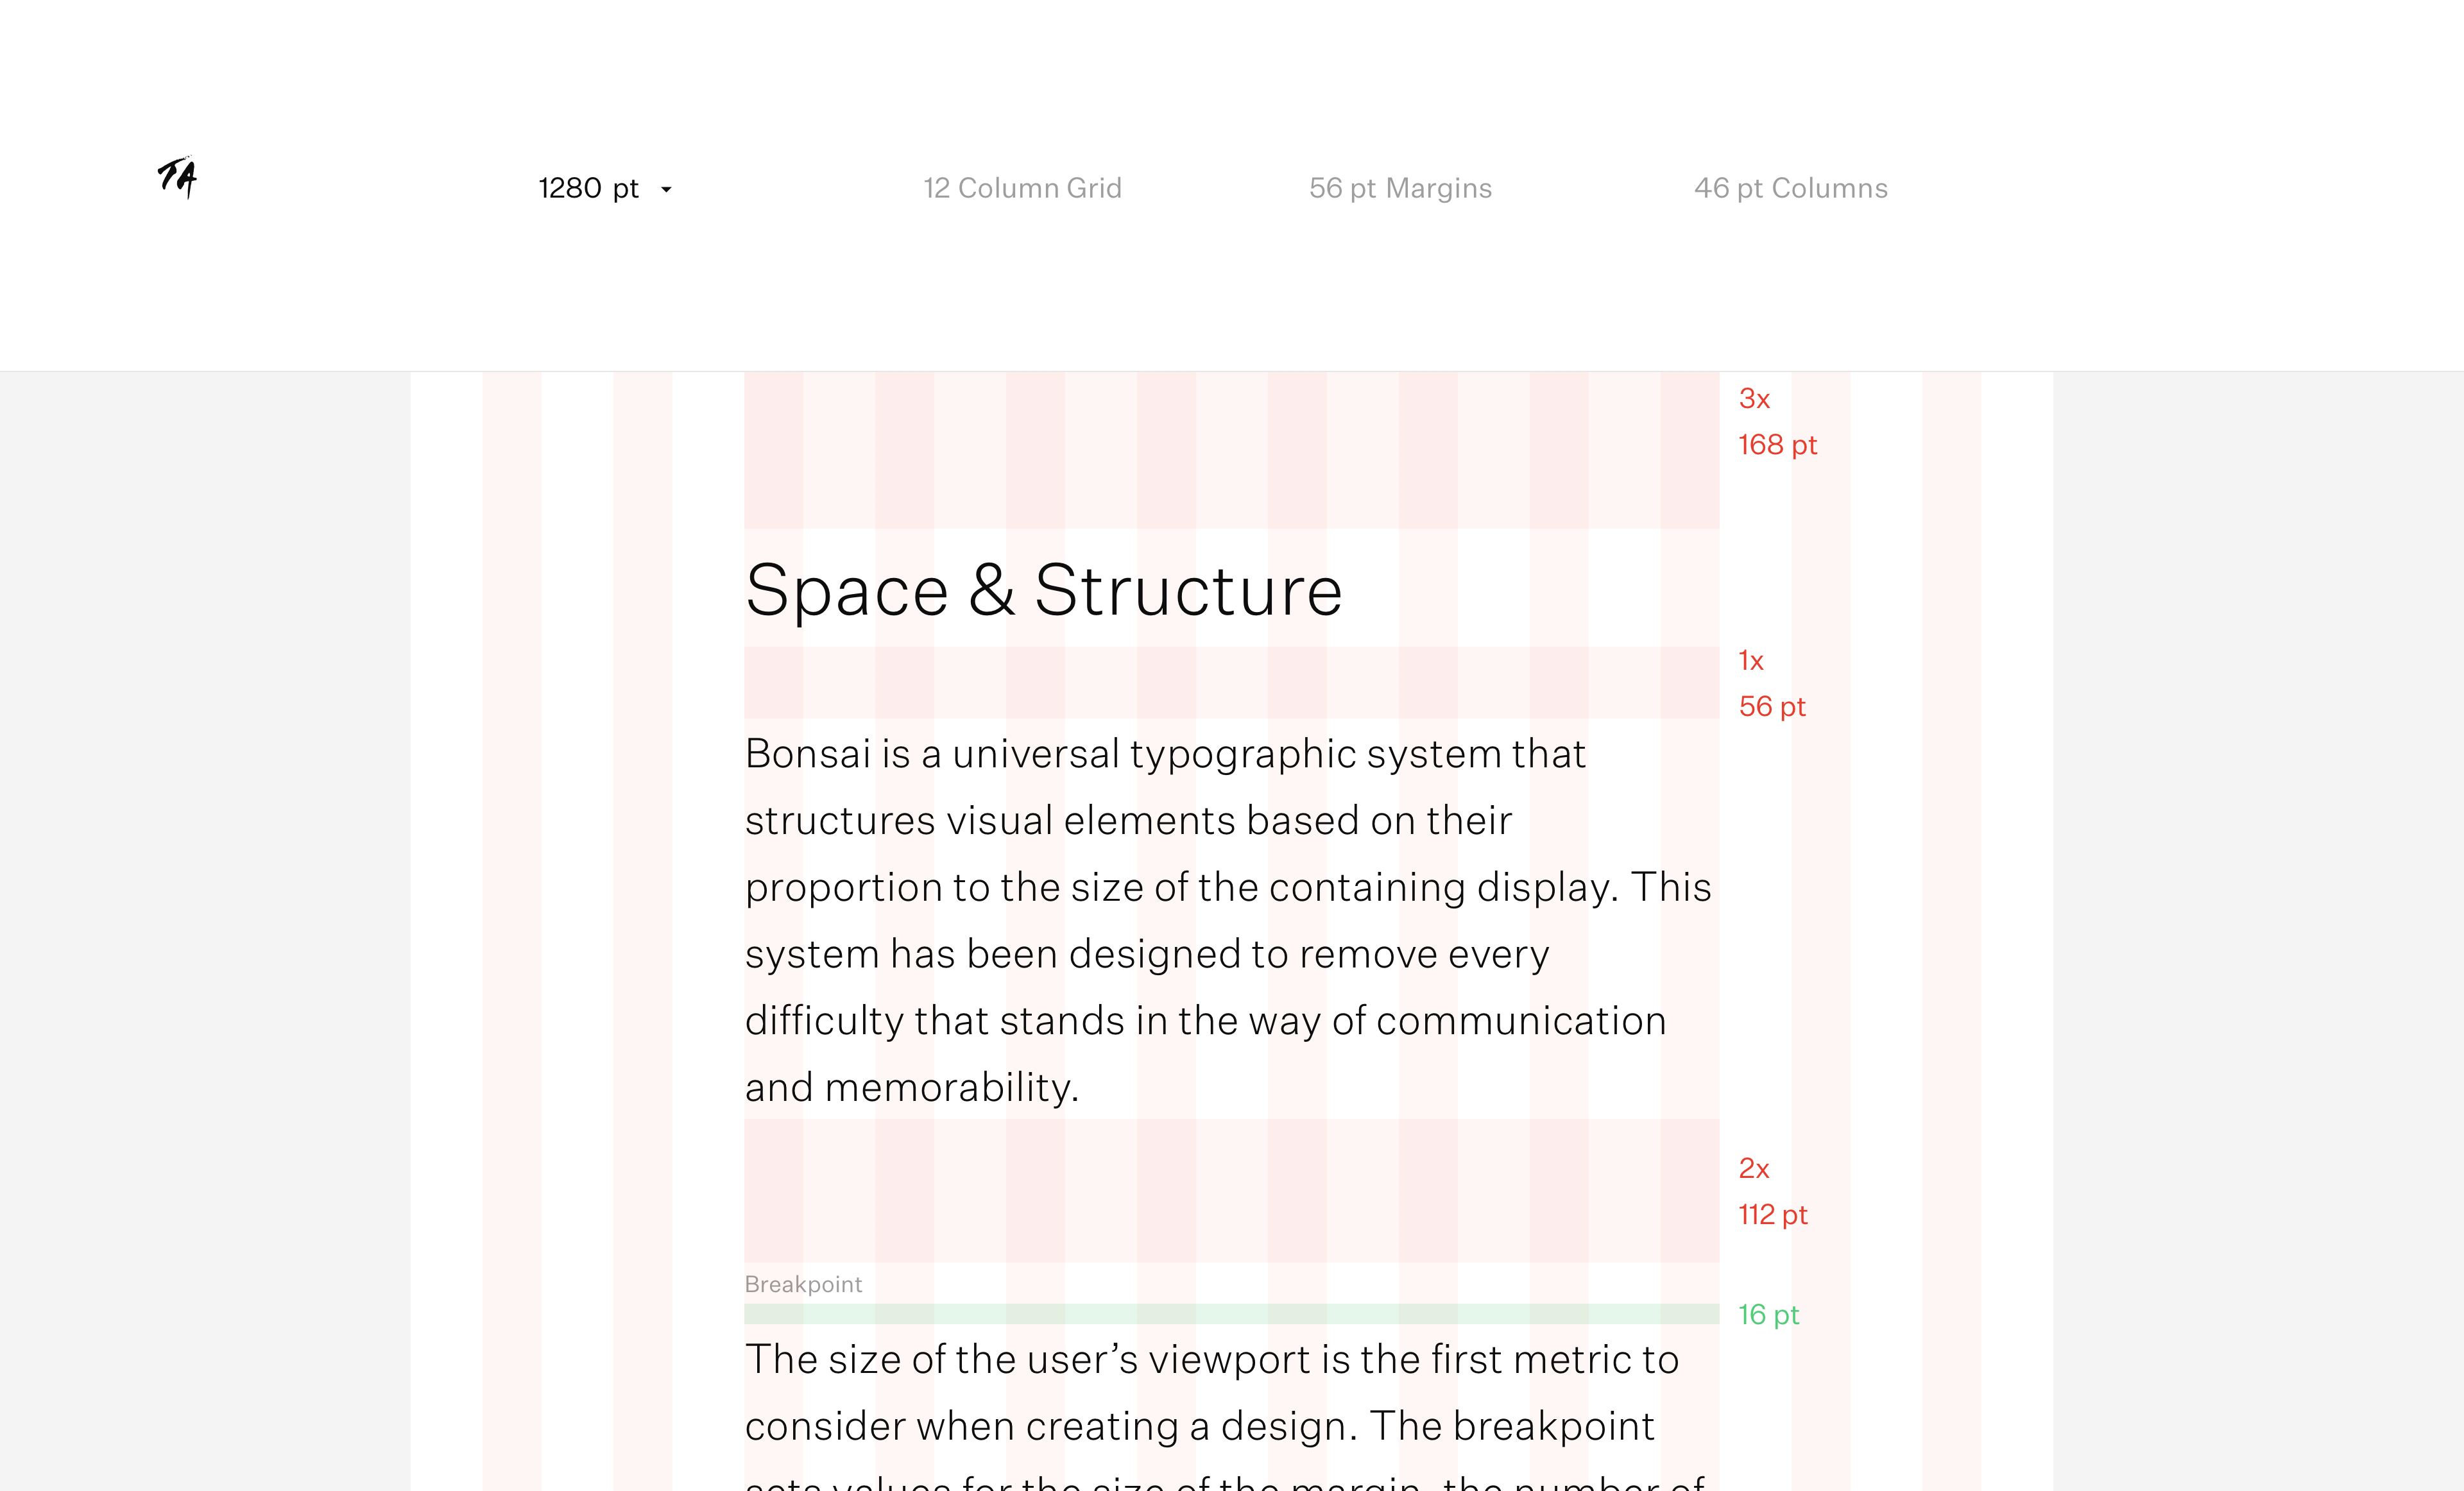 A screenshot of the Typography page from the Bonsai microsite. The small T A logo is in the top left corner. The page features a tool for determining the layout of a page using Bonsai at different device widths. A bar along the top features a dropdown for selecting width, and indicators for the number of columns and widths of those columns and margins. Below that is an example page with the column structure, spacing and type sizes shown.